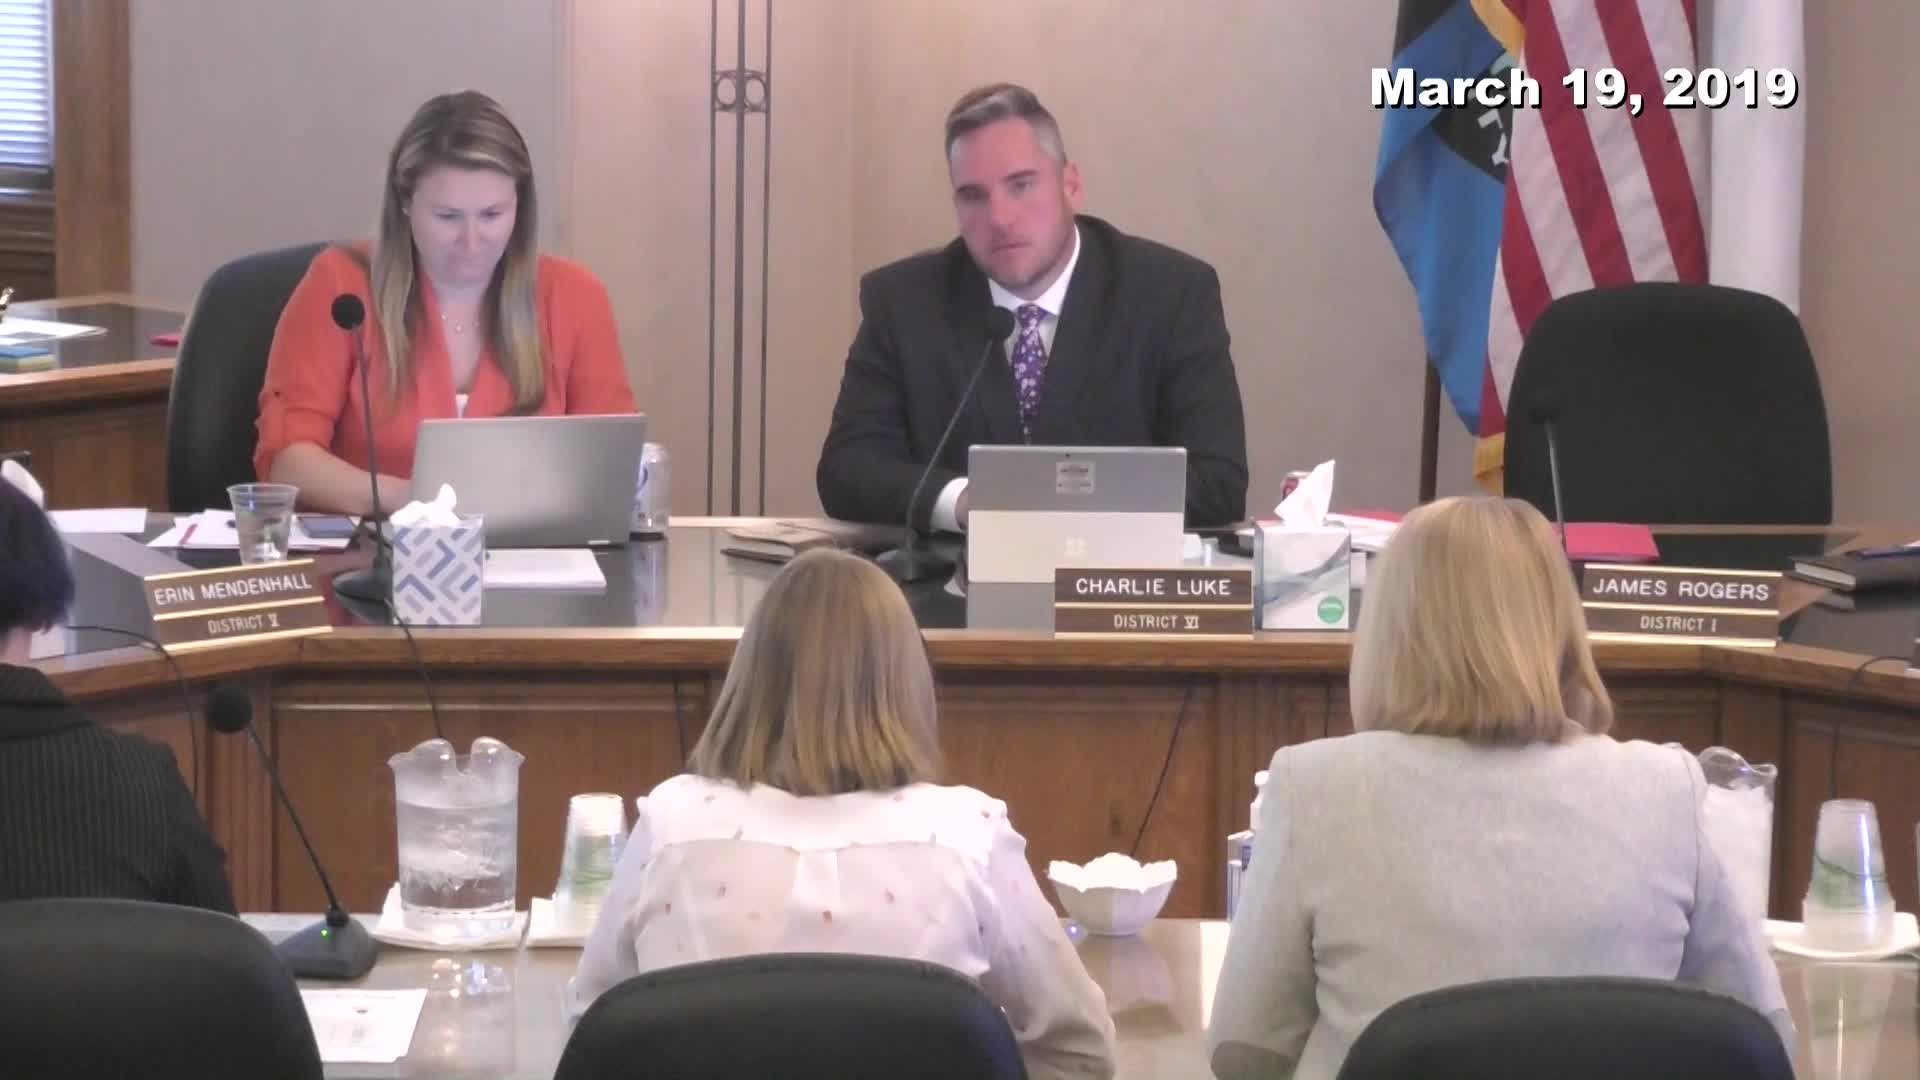 City Council Work Session - 03/19/2019